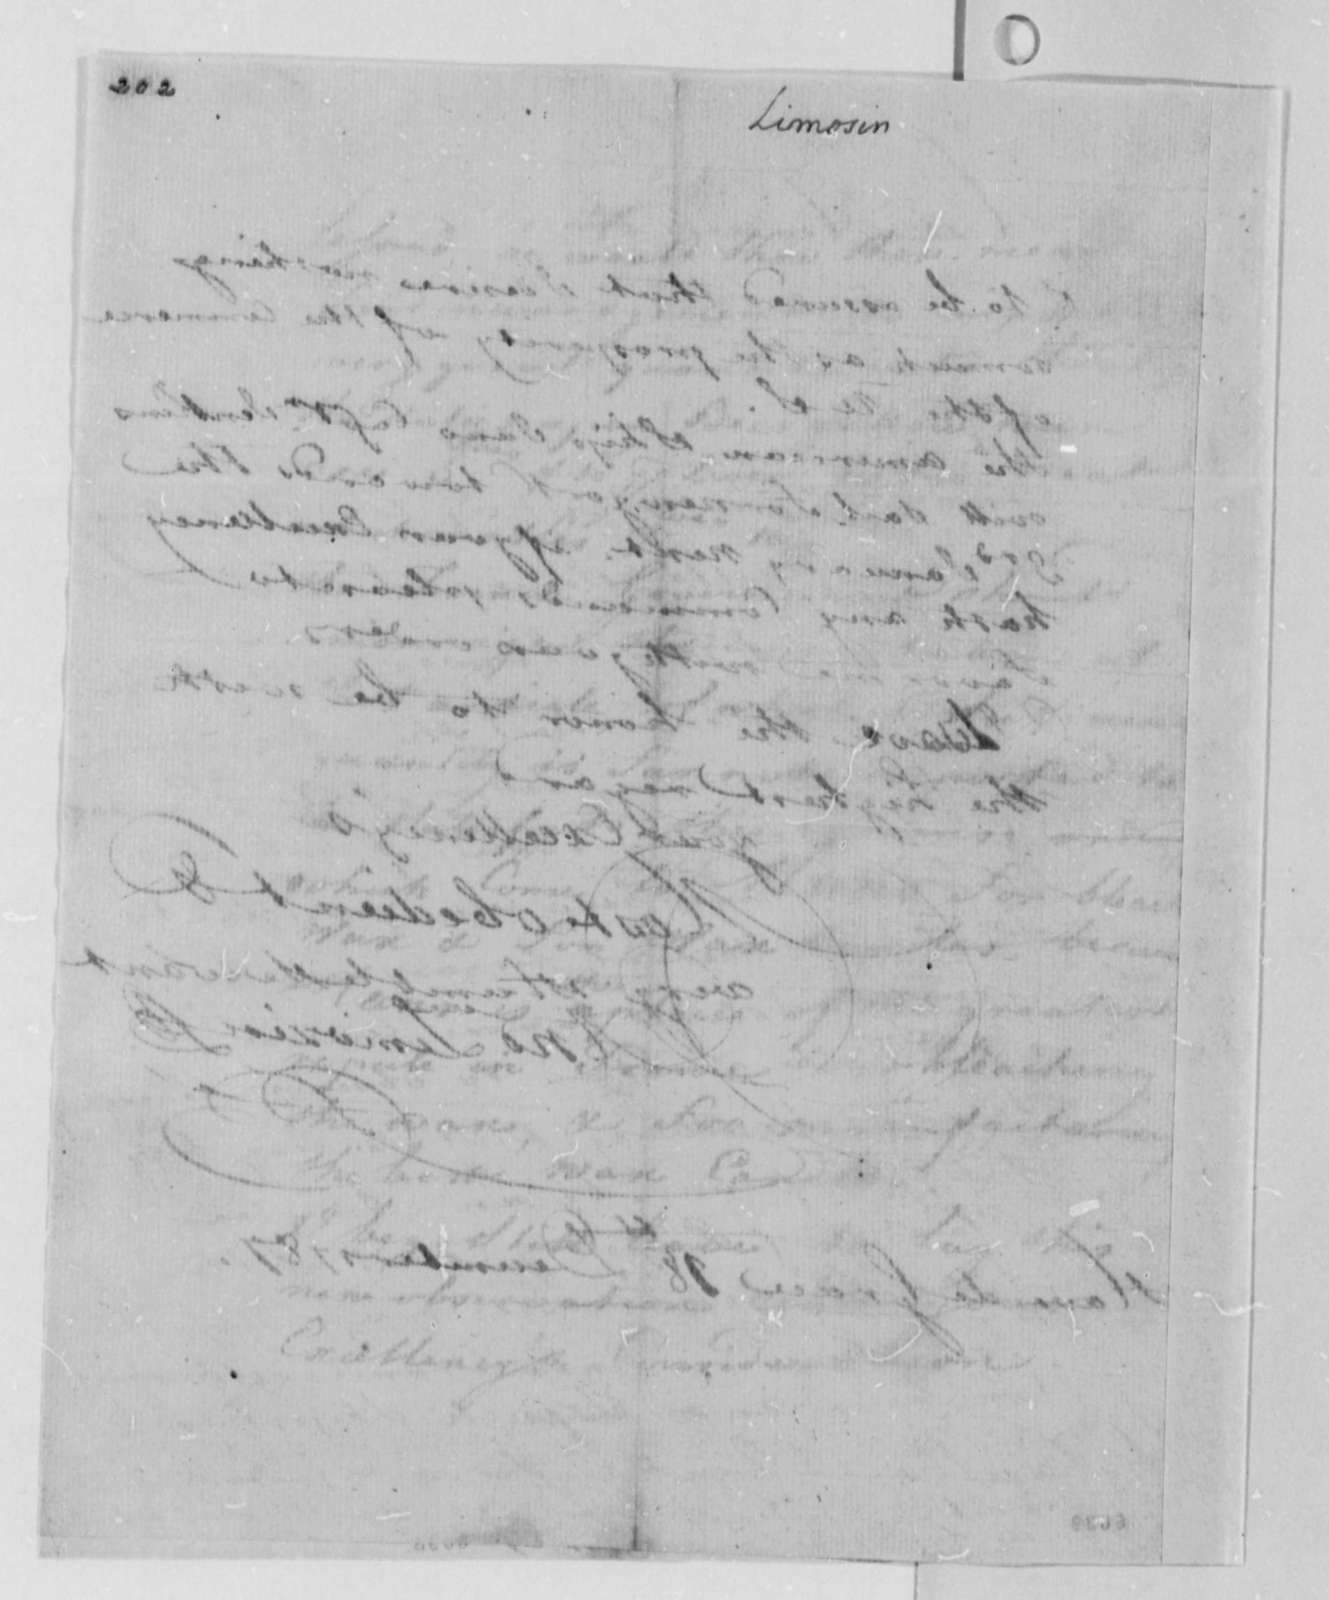 Andre Limozin to Thomas Jefferson, December 18, 1787